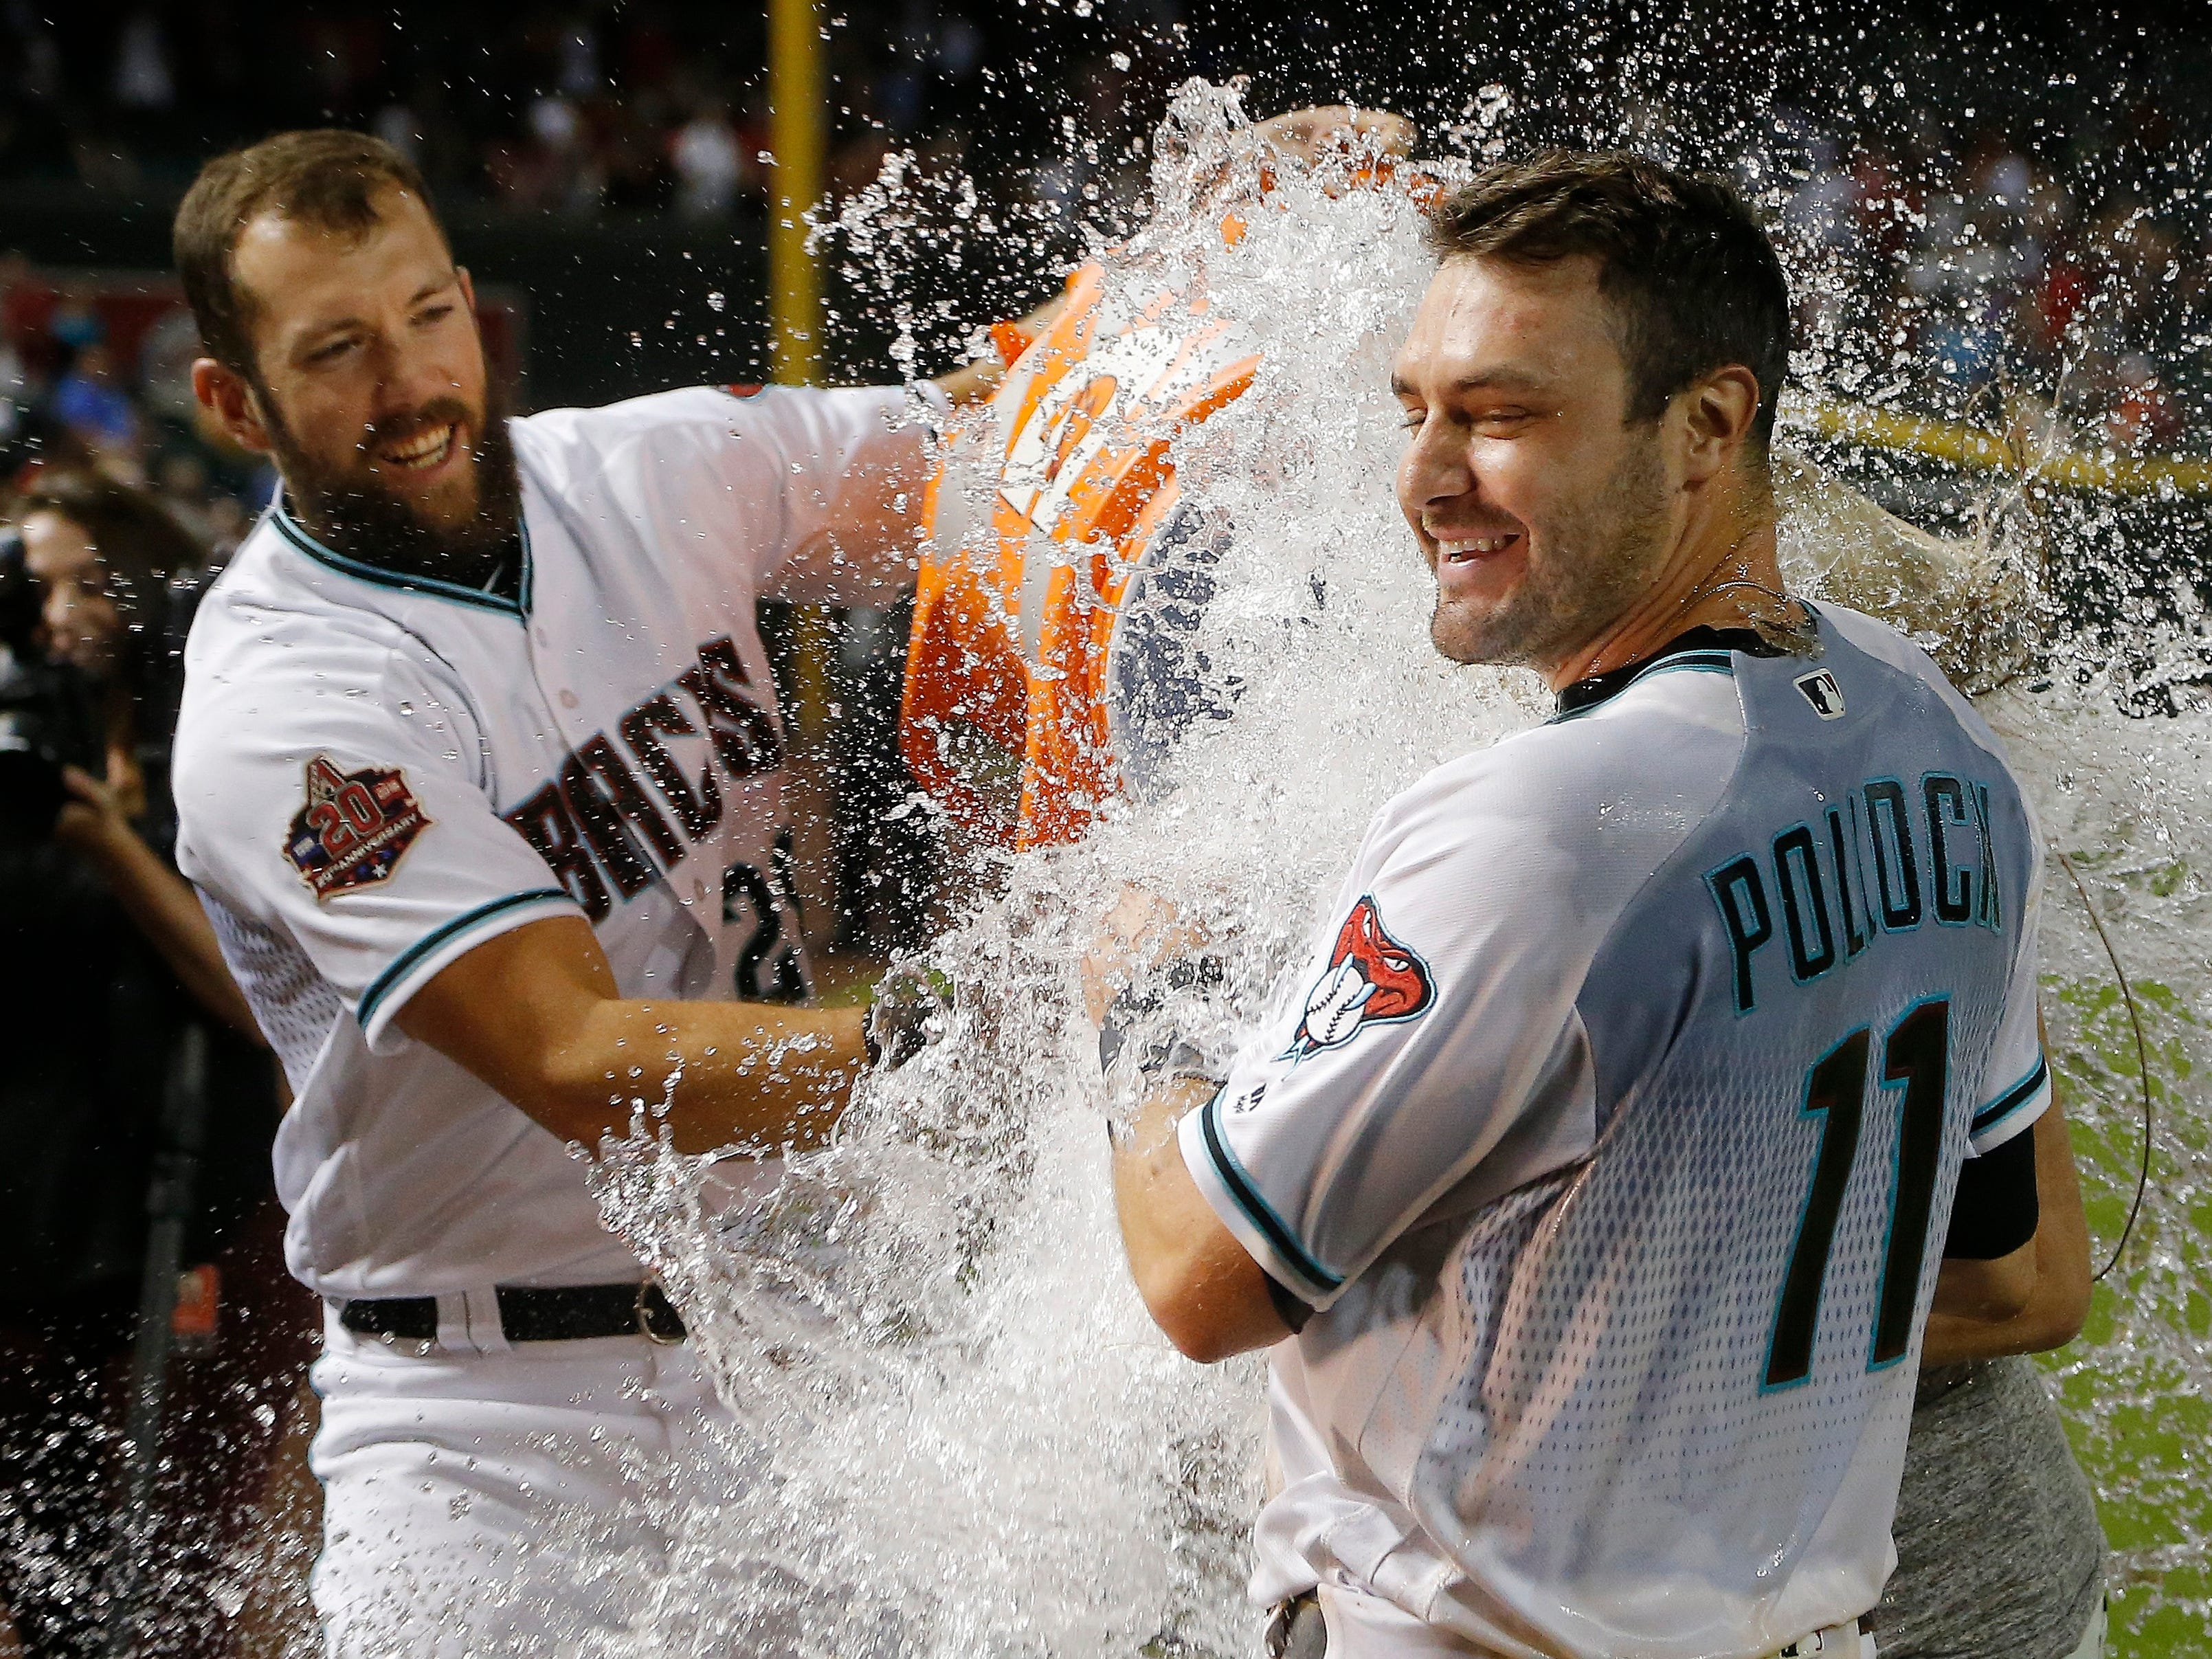 After putting down a sacrifice bunt in the ninth inning, Arizona Diamondbacks' A.J. Pollock (11) gets doused with water by teammate Steven Souza Jr., left, after a baseball game against the Los Angeles Angels, Tuesday, Aug. 21, 2018, in Phoenix. The Diamondbacks defeated the Angels 5-4.